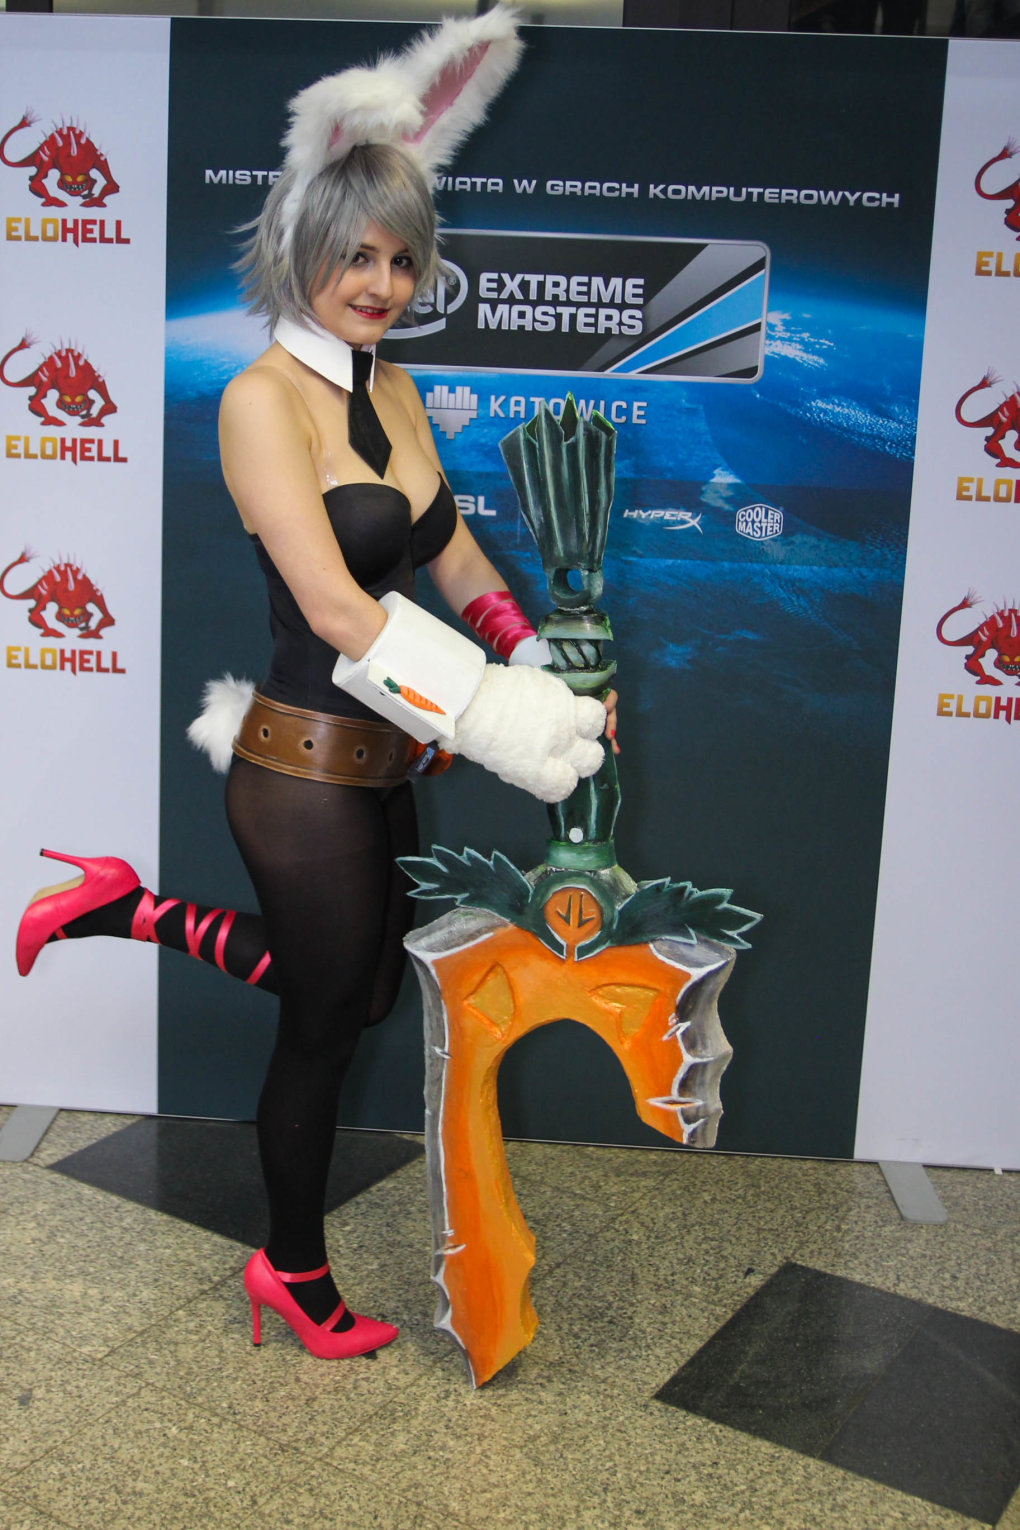 vcl9g65 - lol cosplay at intel extreme masters